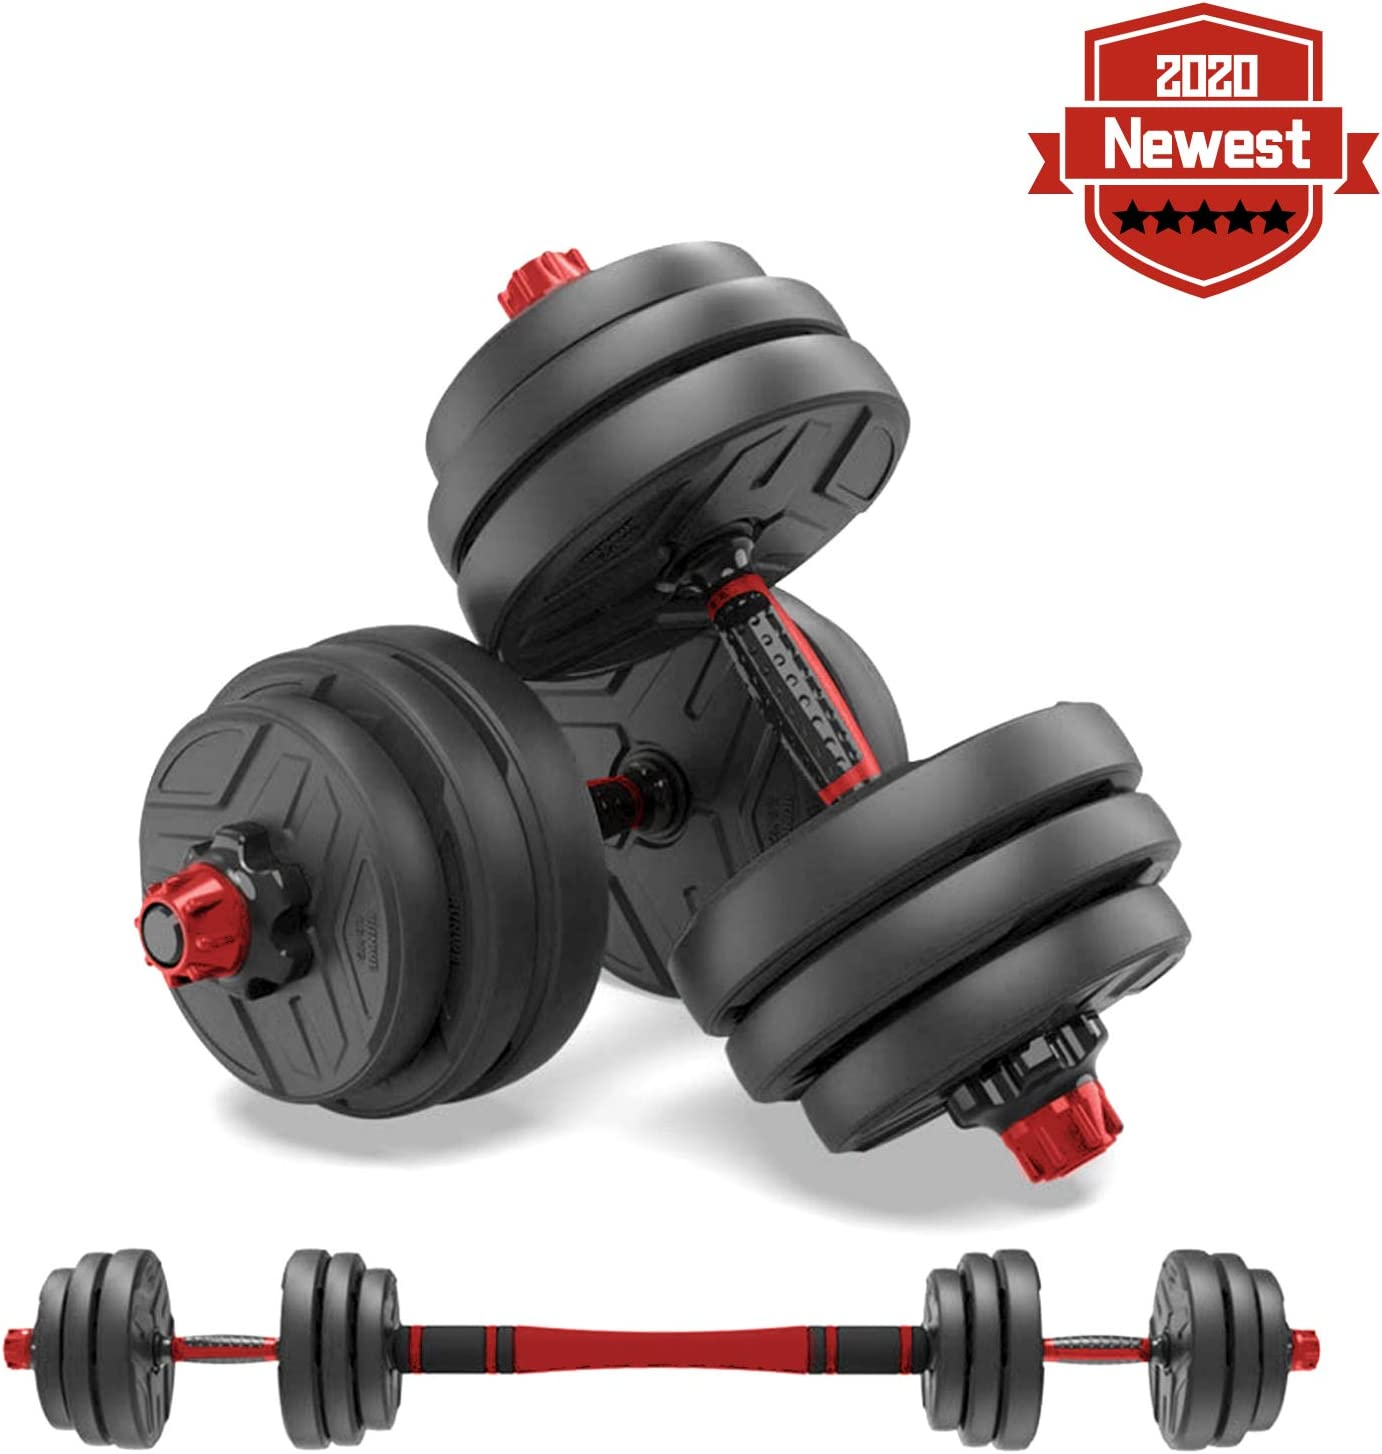 shanchar Adjustable Weights Dumbbells Set,Free Weights Dumbbells Set for Men and Women with Connecting Rod Can Be Used As Barbell for Home Gym Work Out Training 2Pair